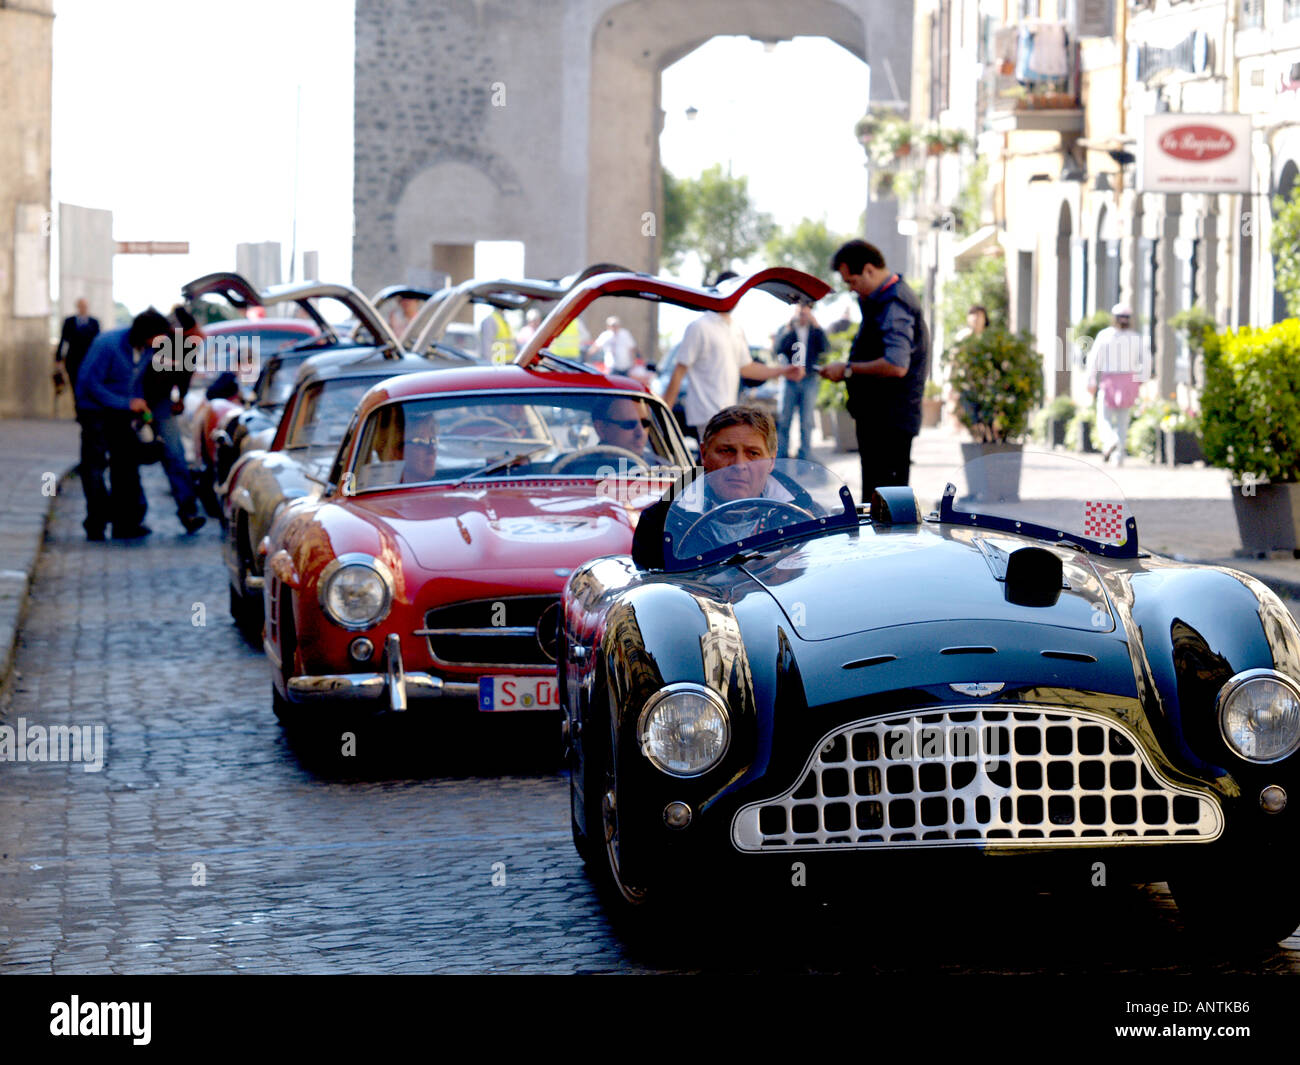 1950 Jaguar Parravano in front of row of gull wing door Mecedes with background of Roman arch - Stock Image